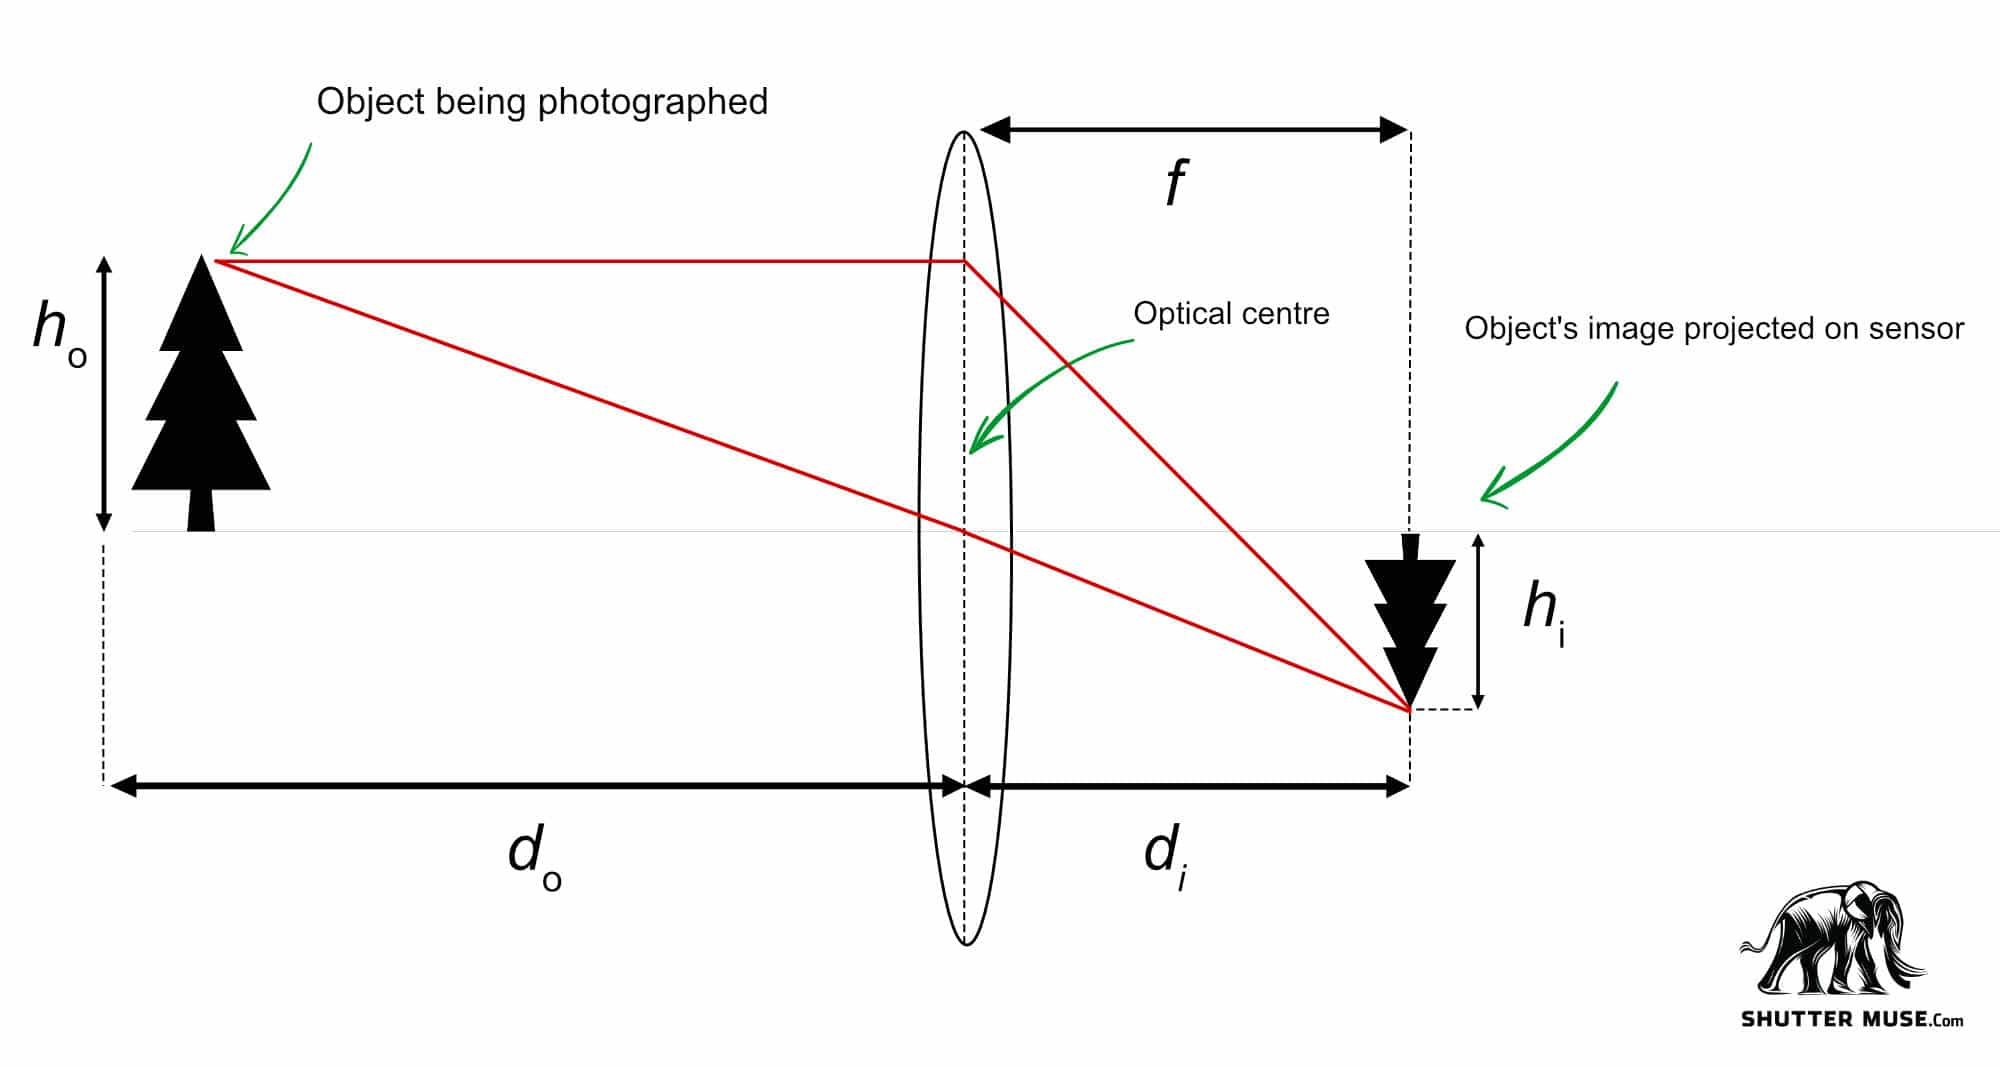 How To Calculate The New Mfd Of A Lens When Using An